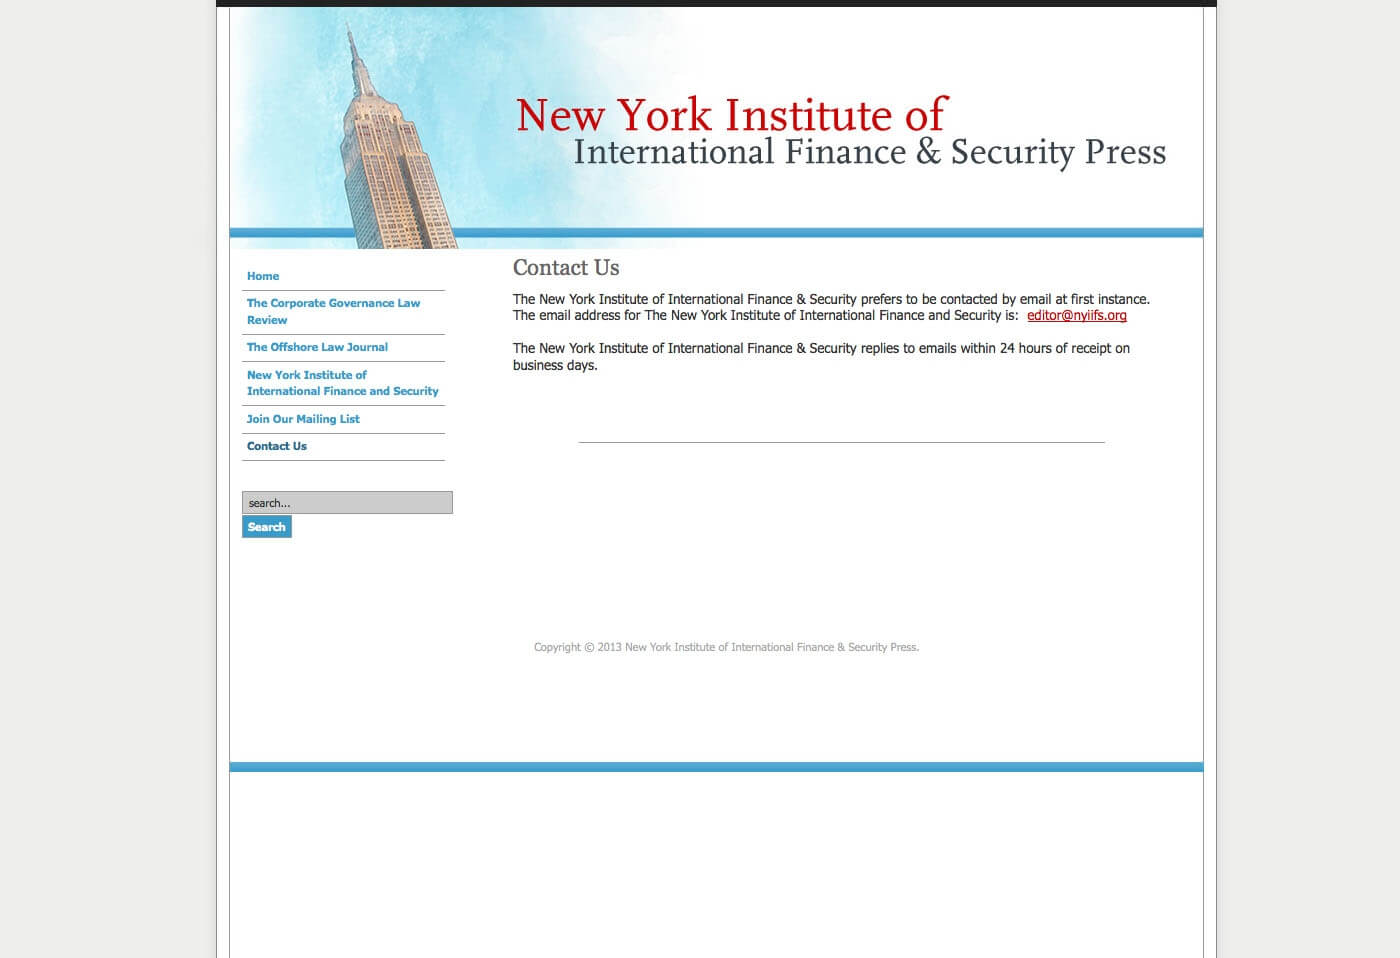 Able Video New York Institute of International Finance and Security Press Website 03